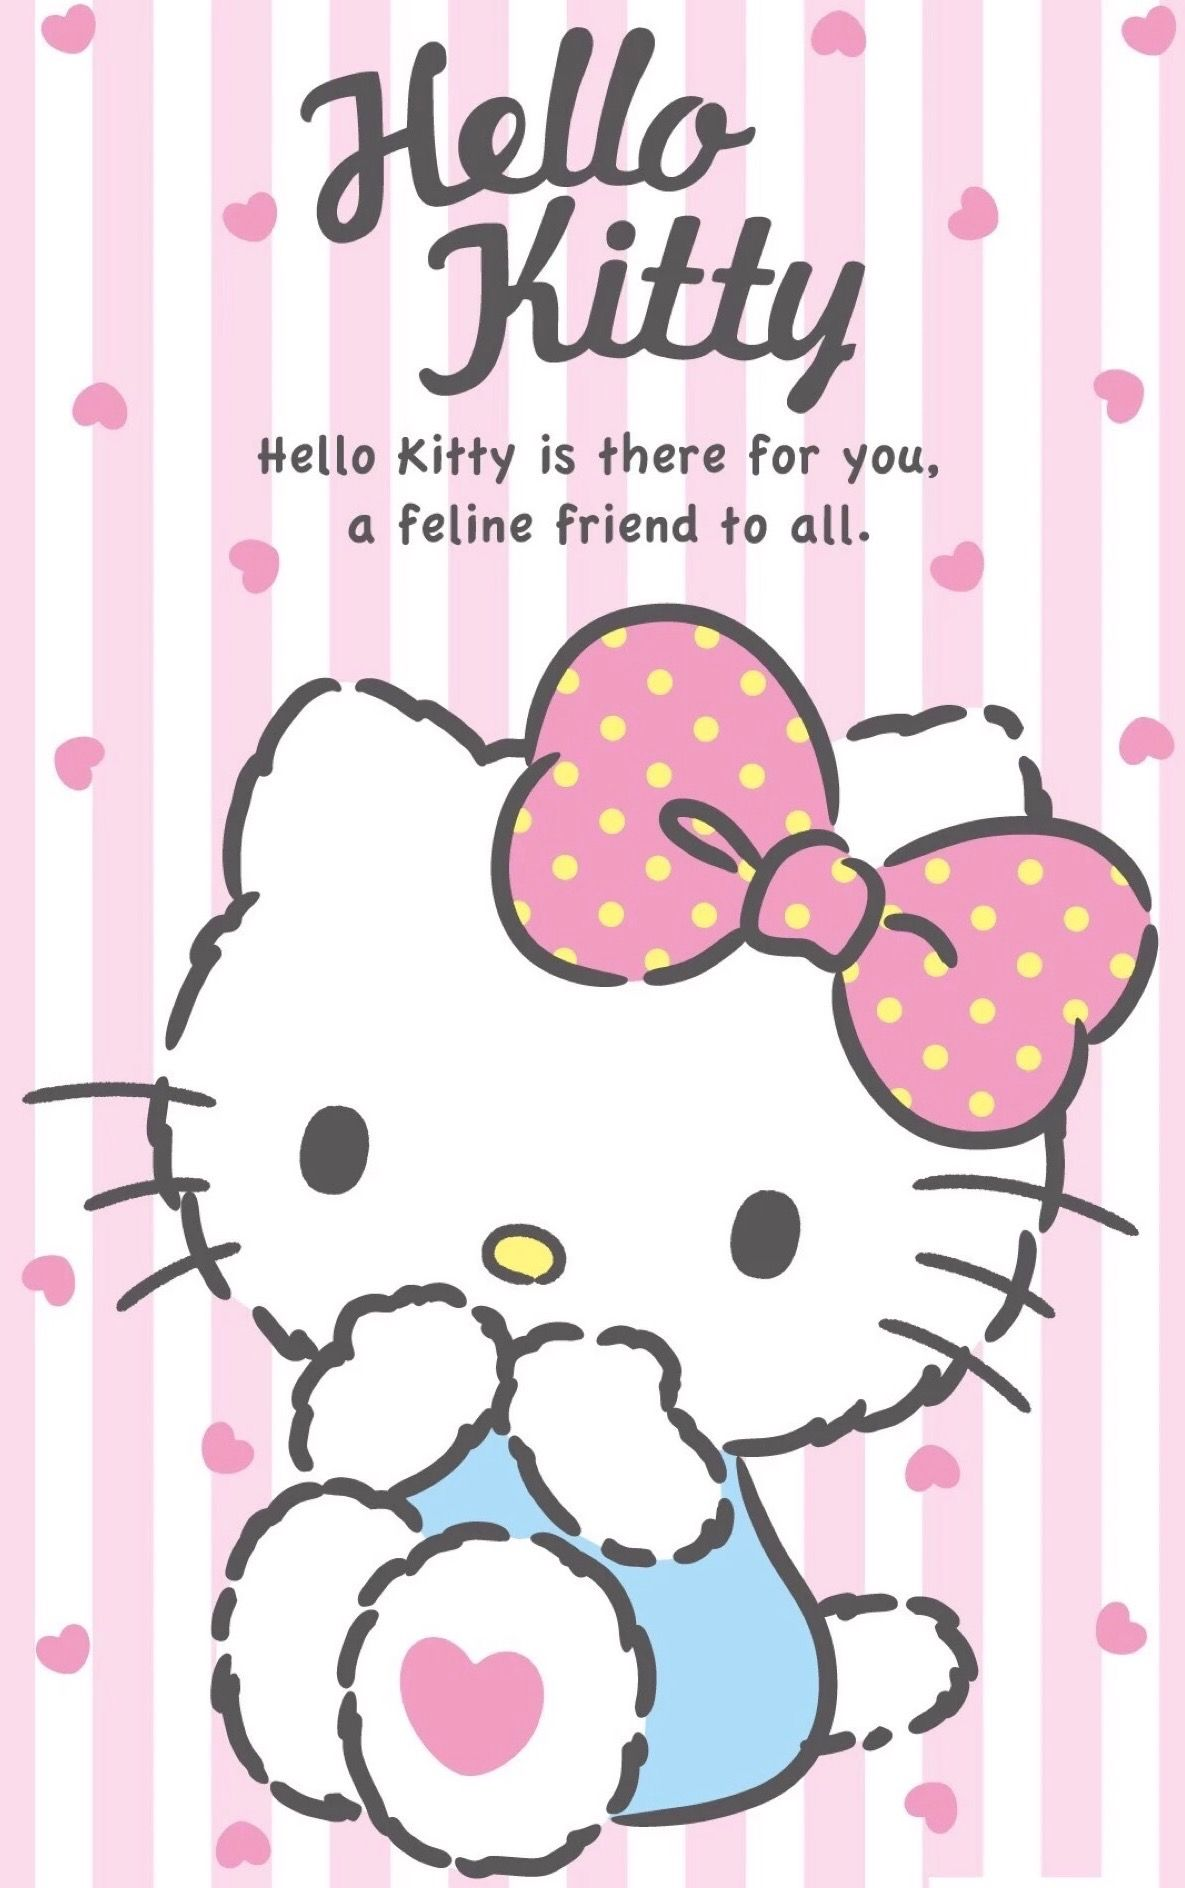 Pin by becky harvey on hello kitty pinterest hello kitty kitty